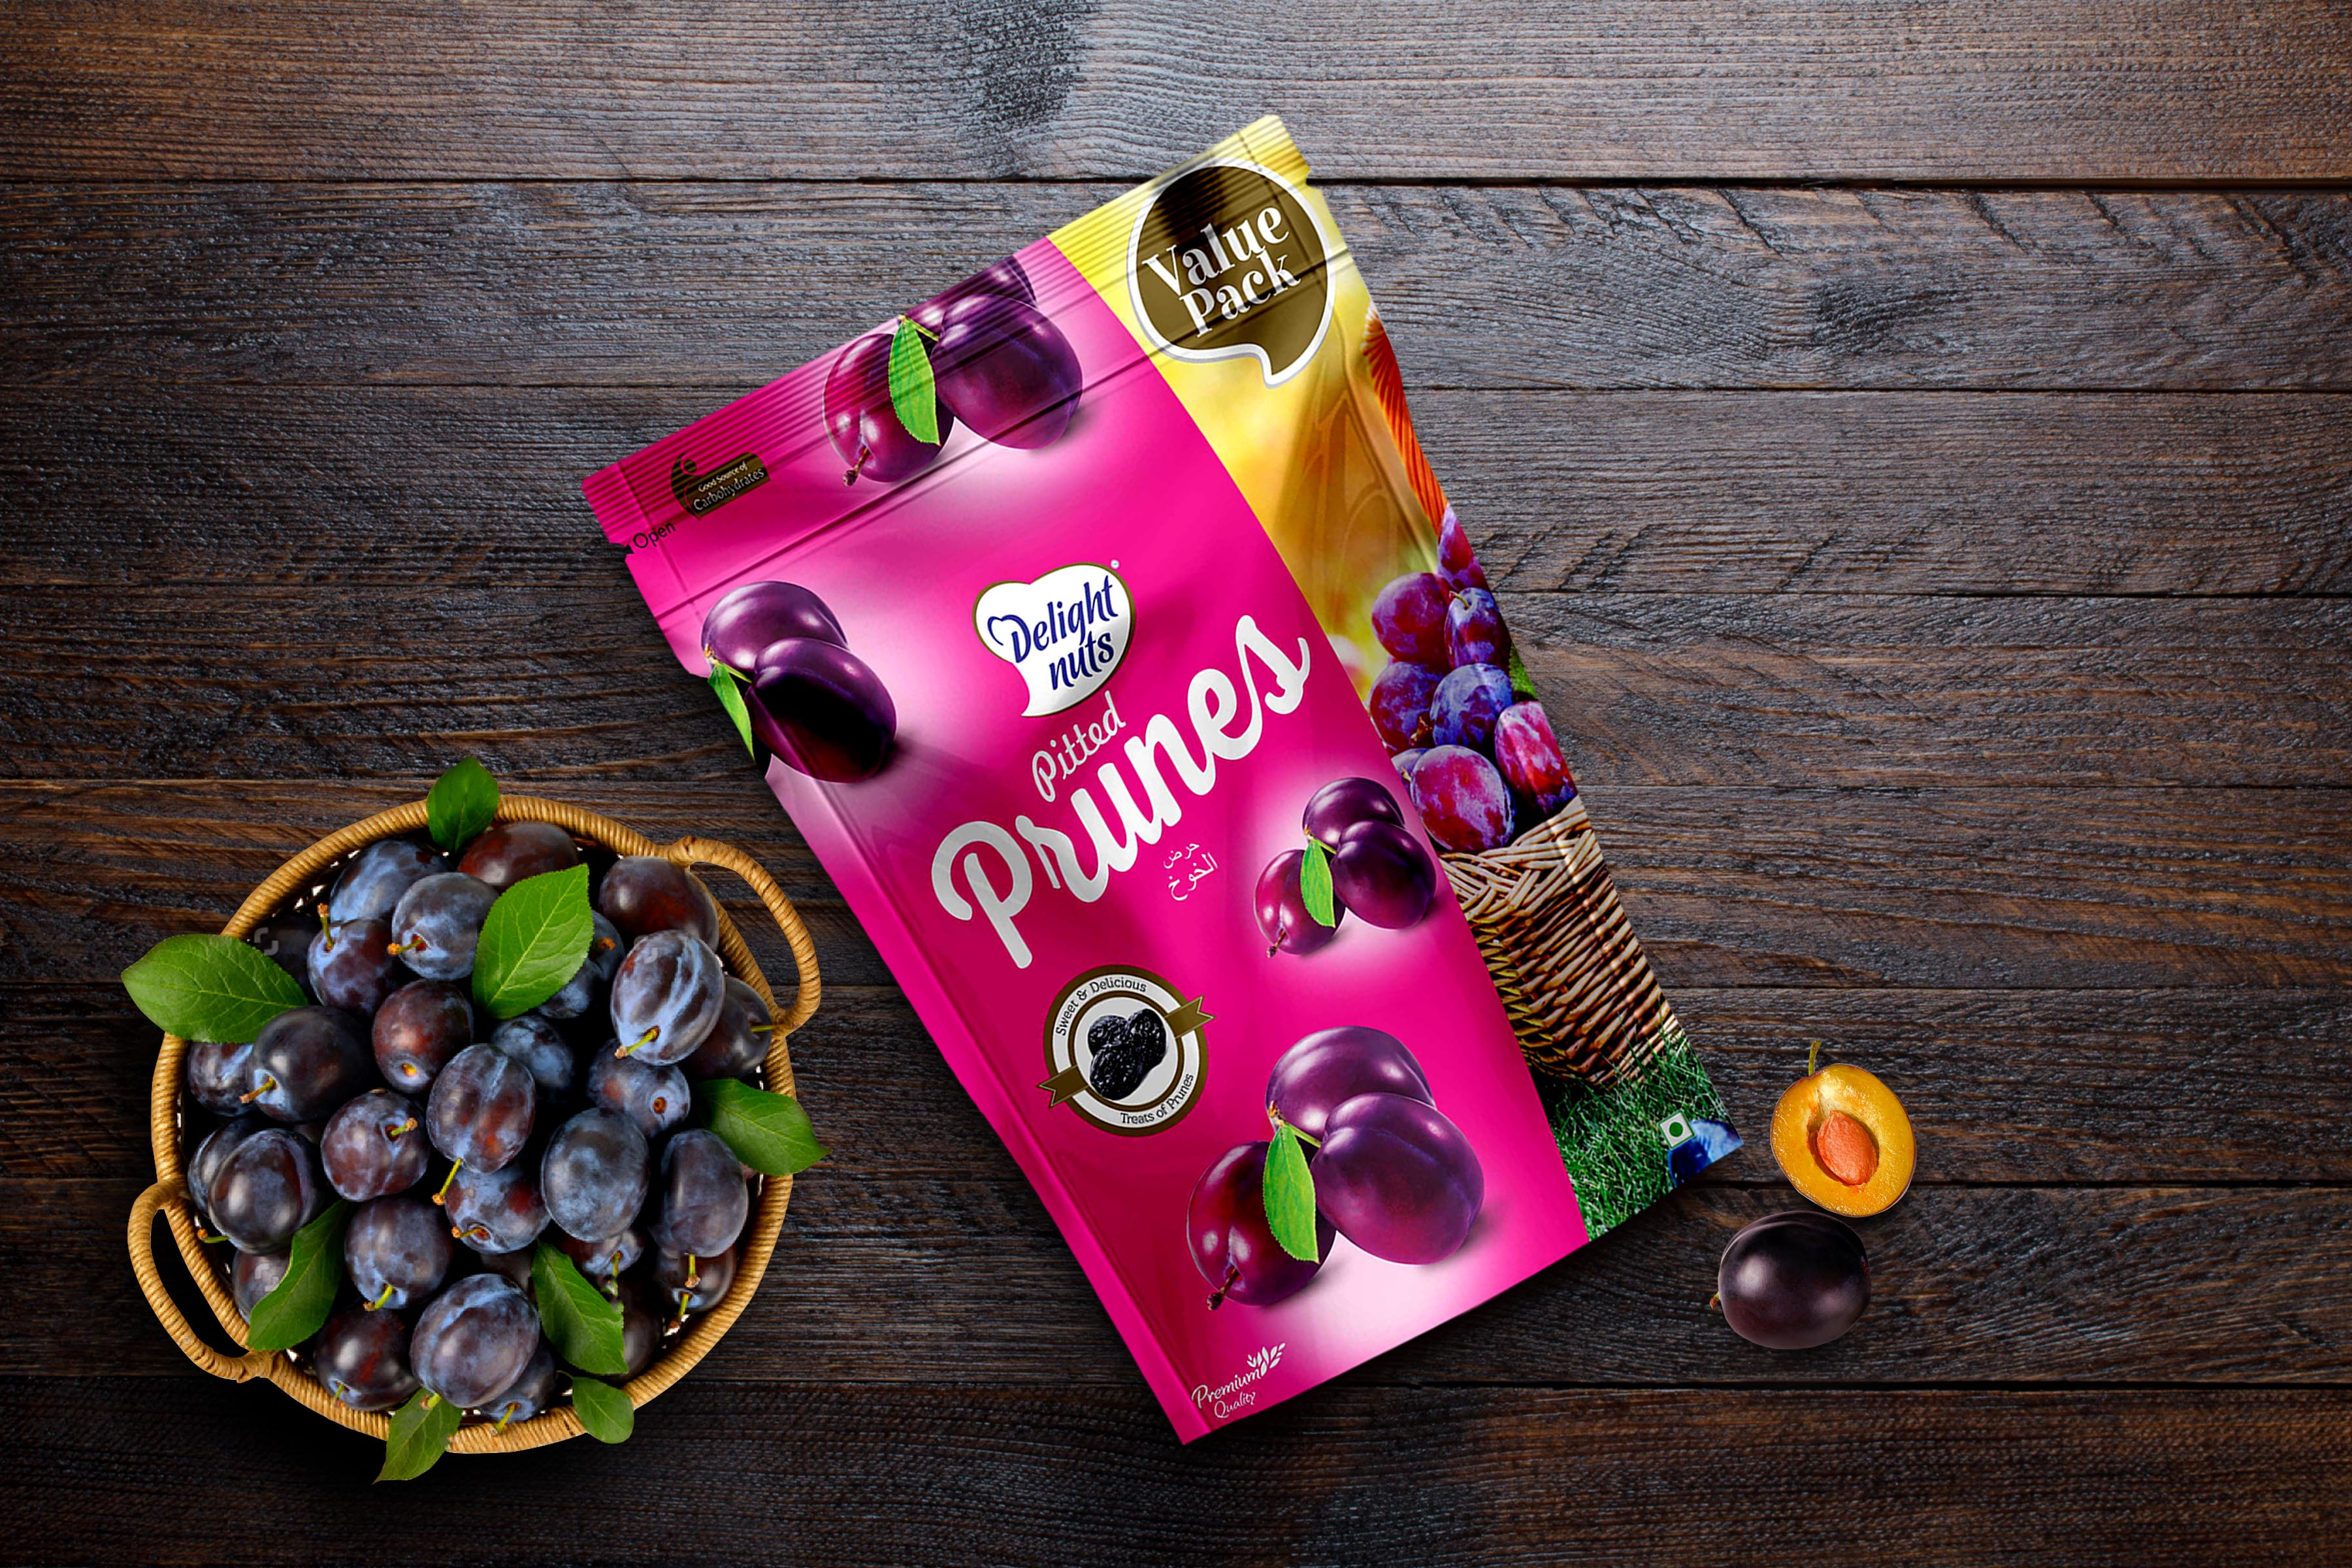 Delight Nuts - Pitted Prunes